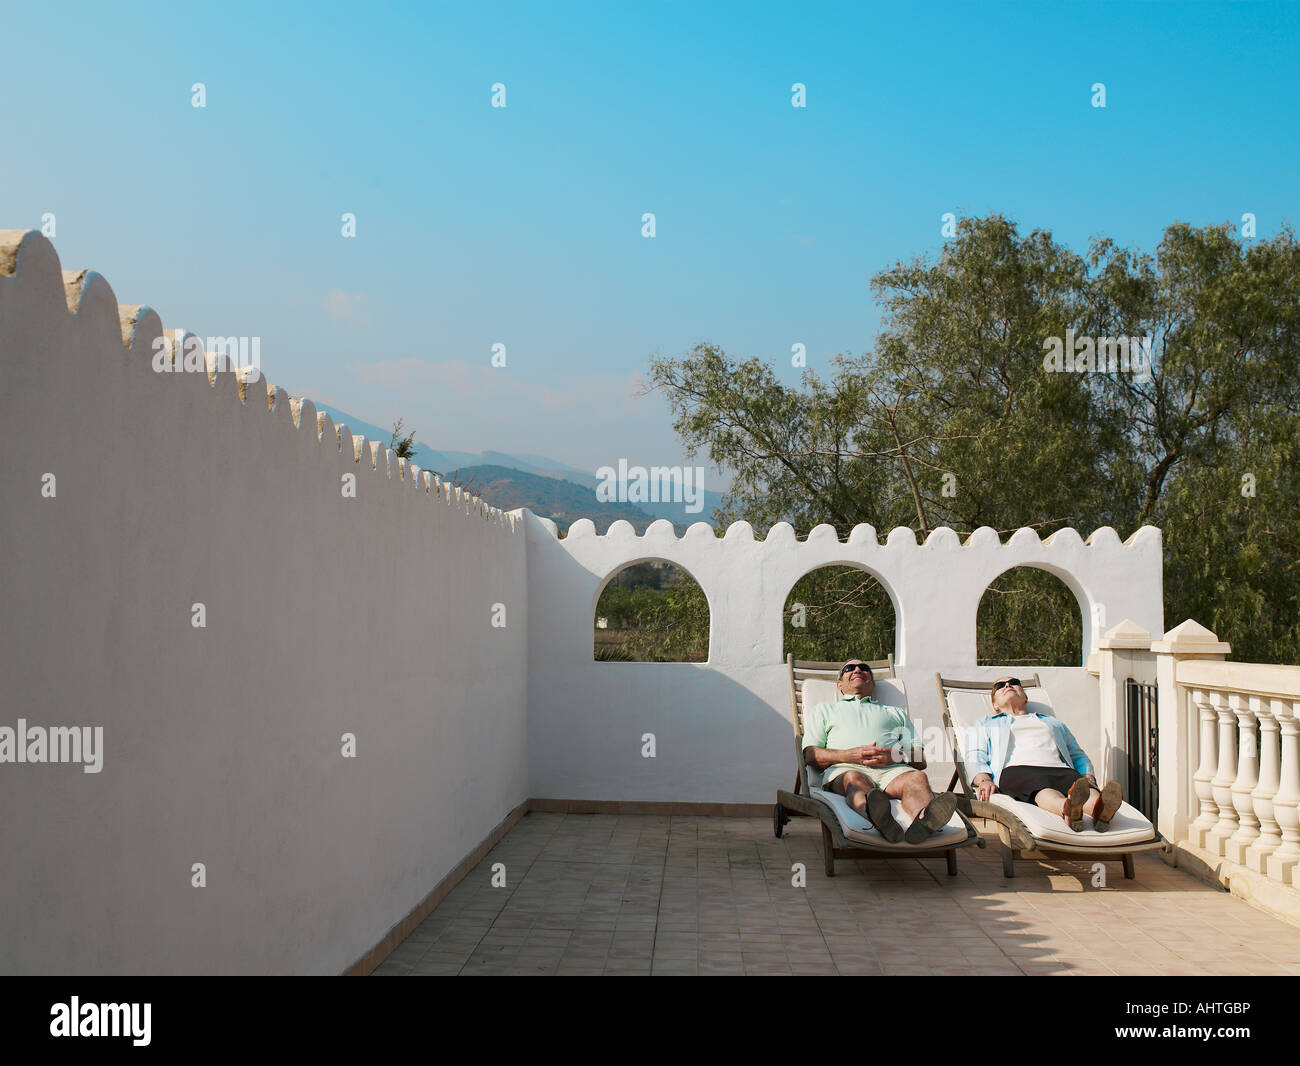 Senior couple sunbathing on balcony terrace stock photo for Balcony sunbathing